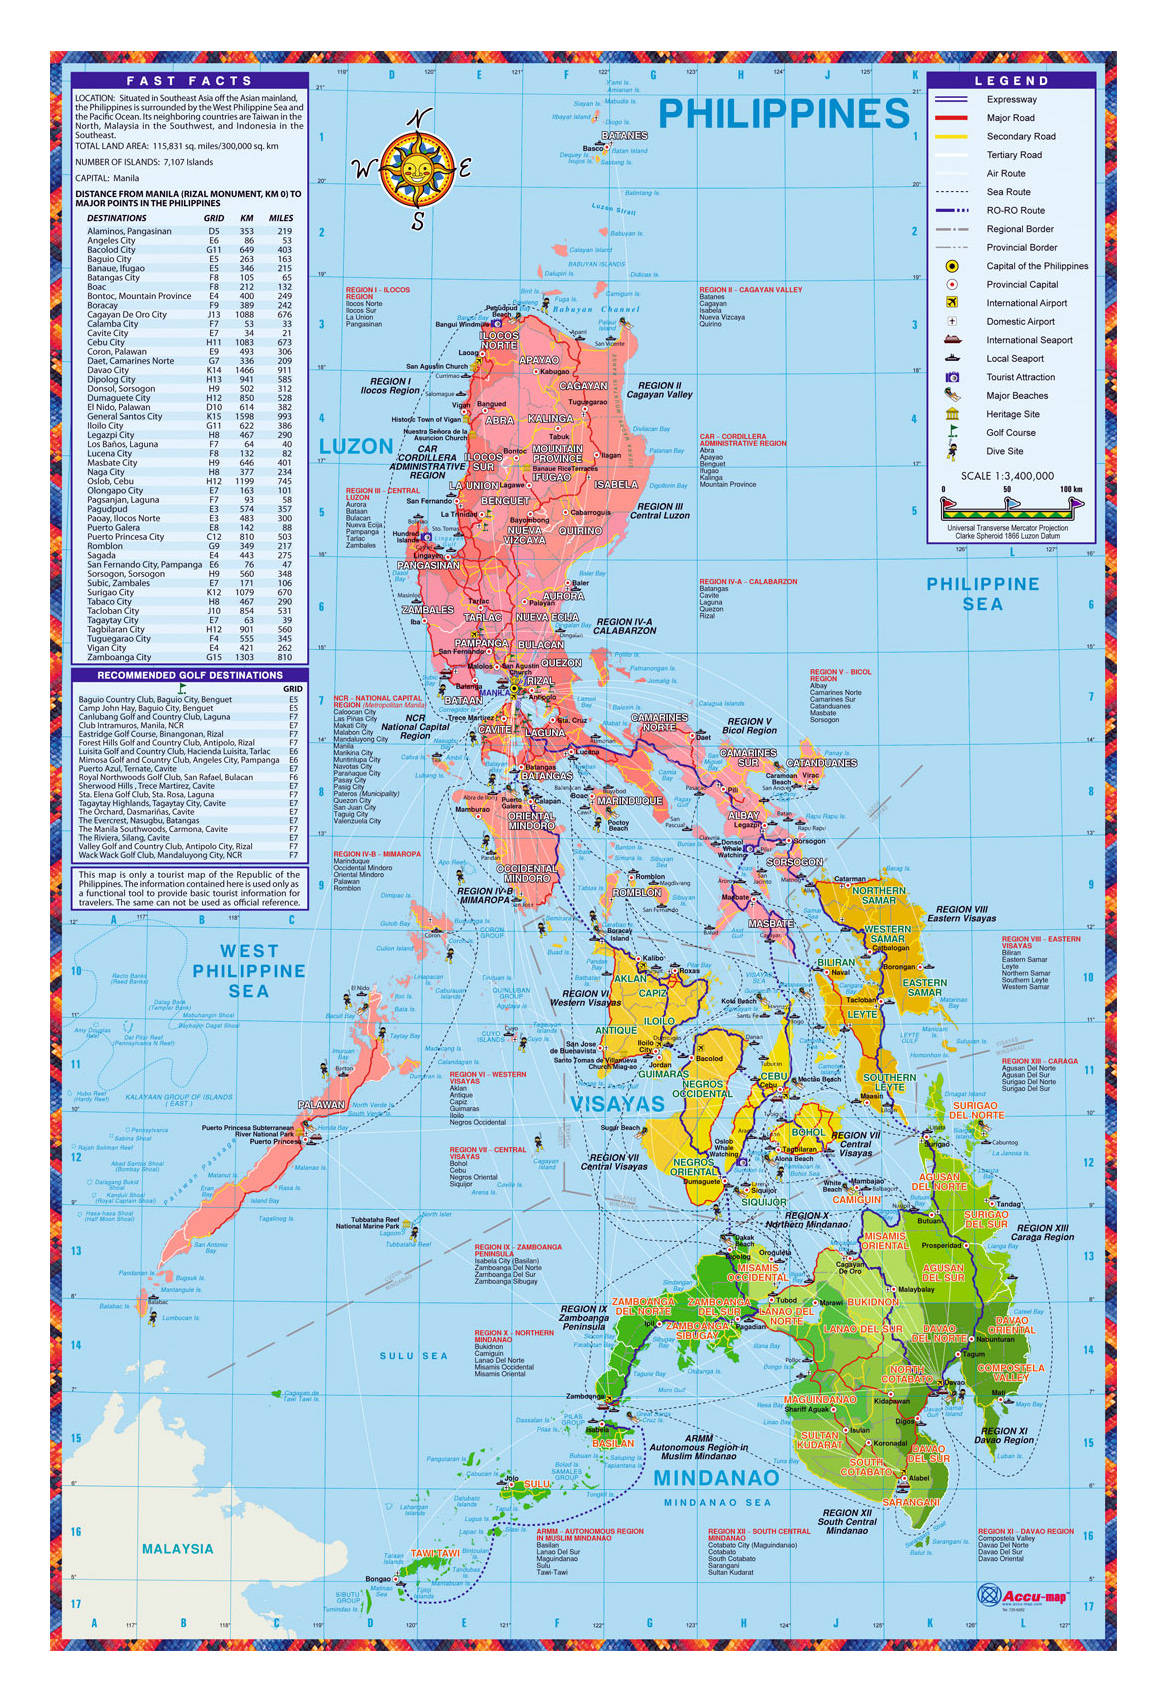 Tourist Map Of The Philippines Detailed tourist map of Philippines | Philippines | Asia